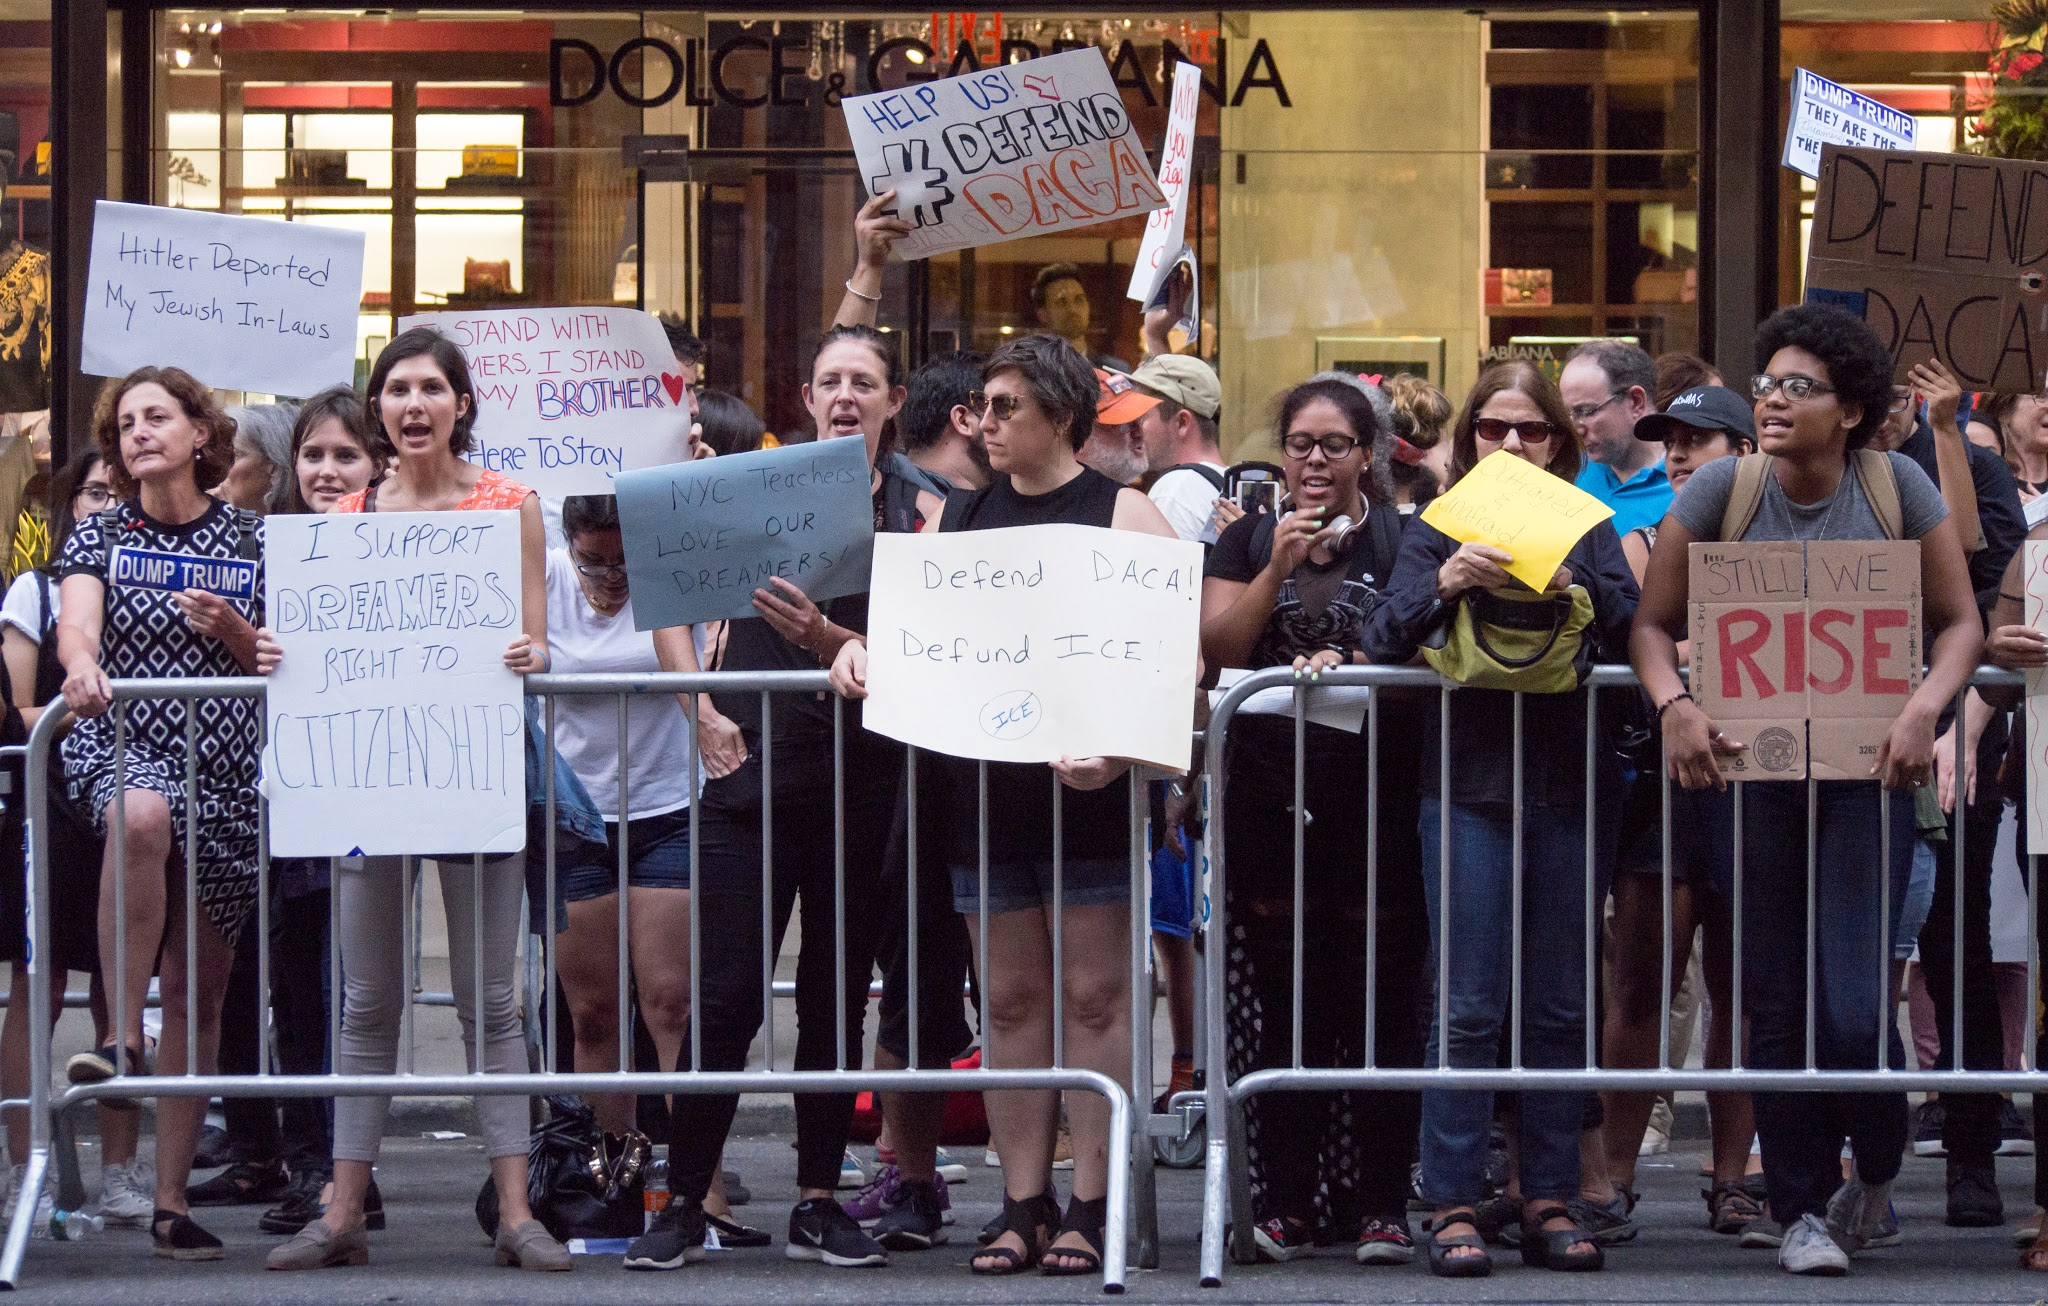 DACA_protest_at_Trump_Tower_(52637).jpg